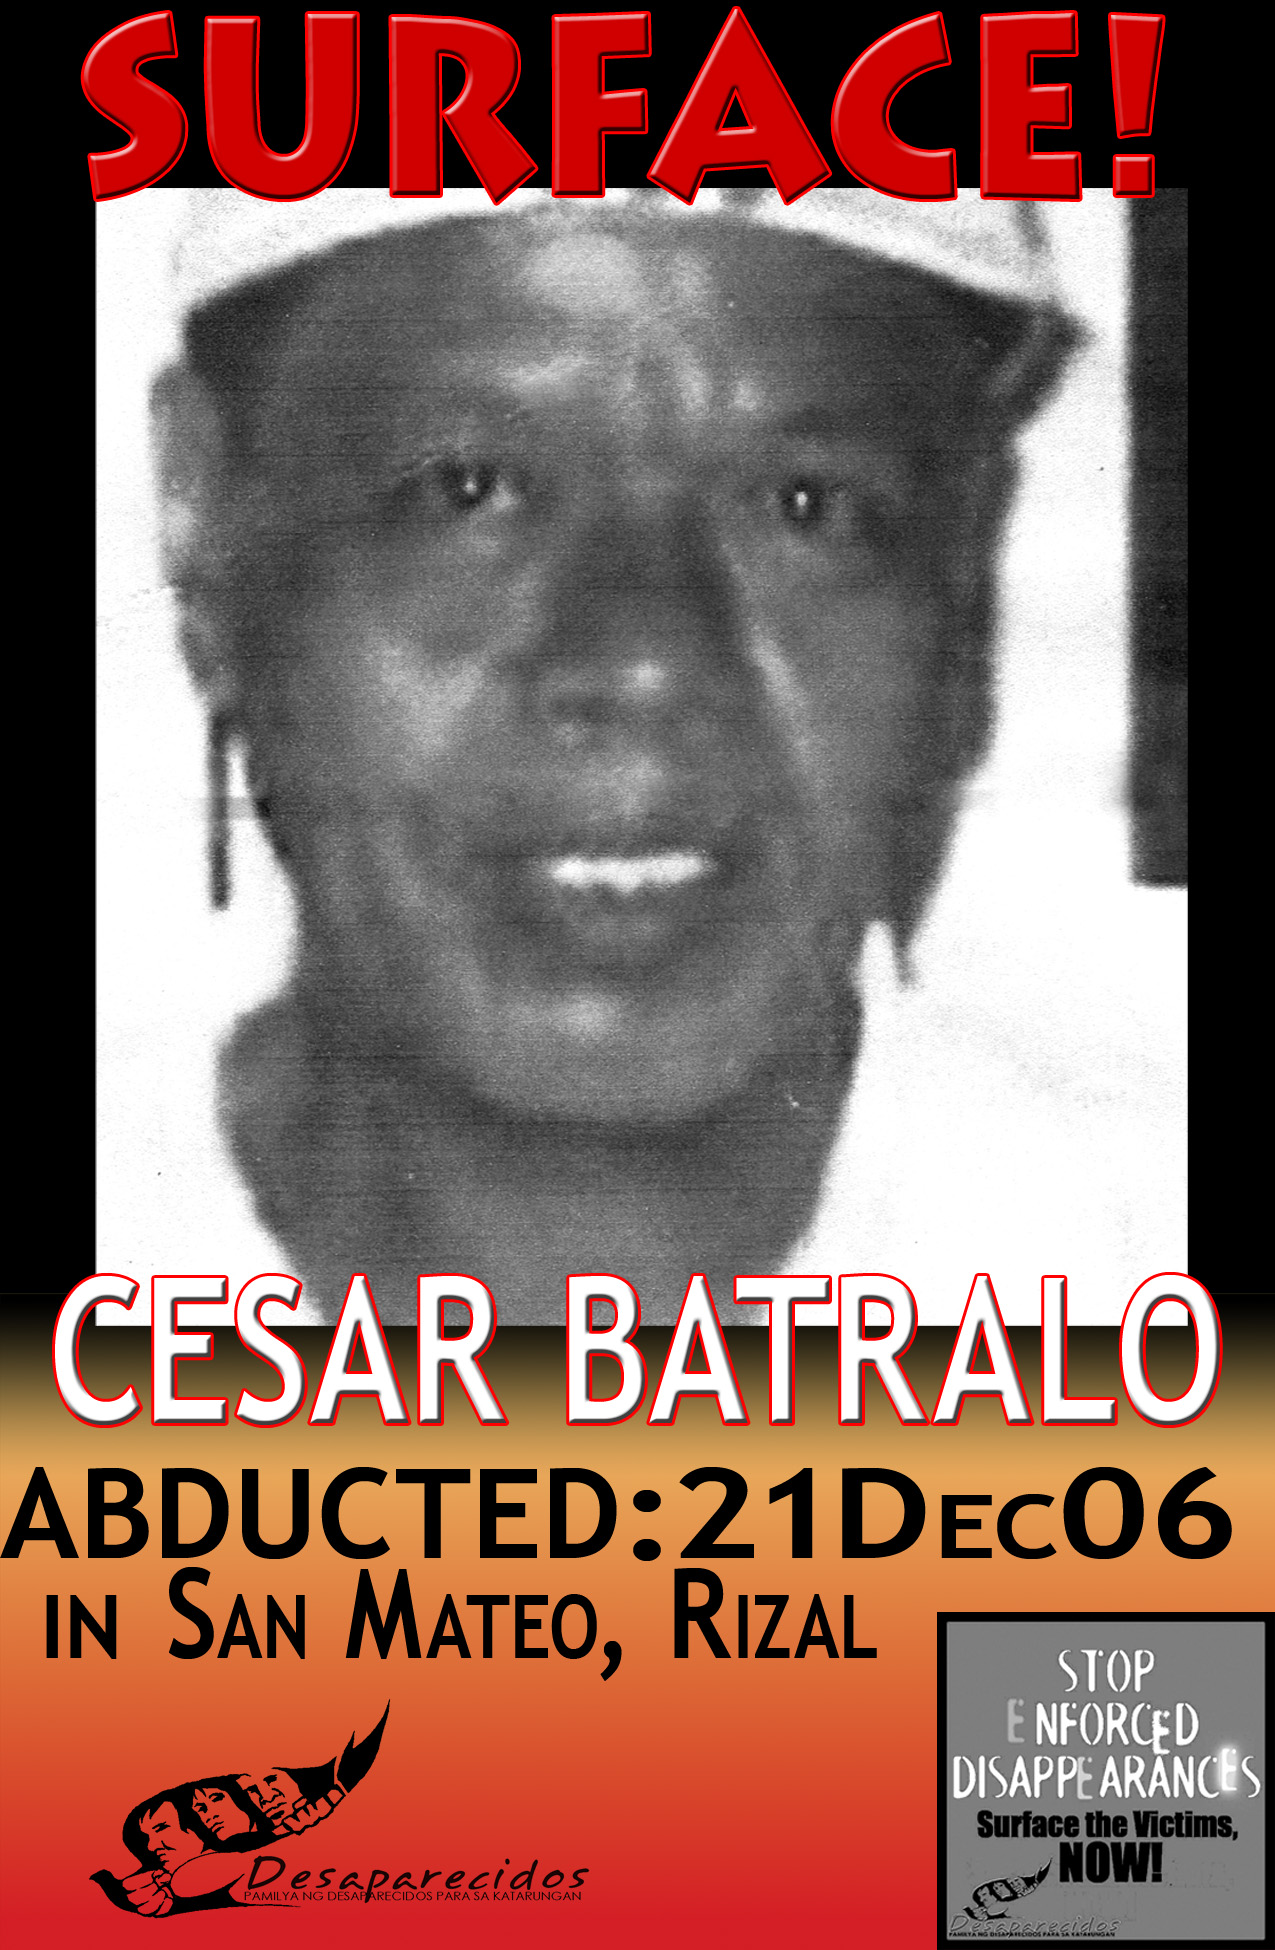 Photo of Cesar Batralo